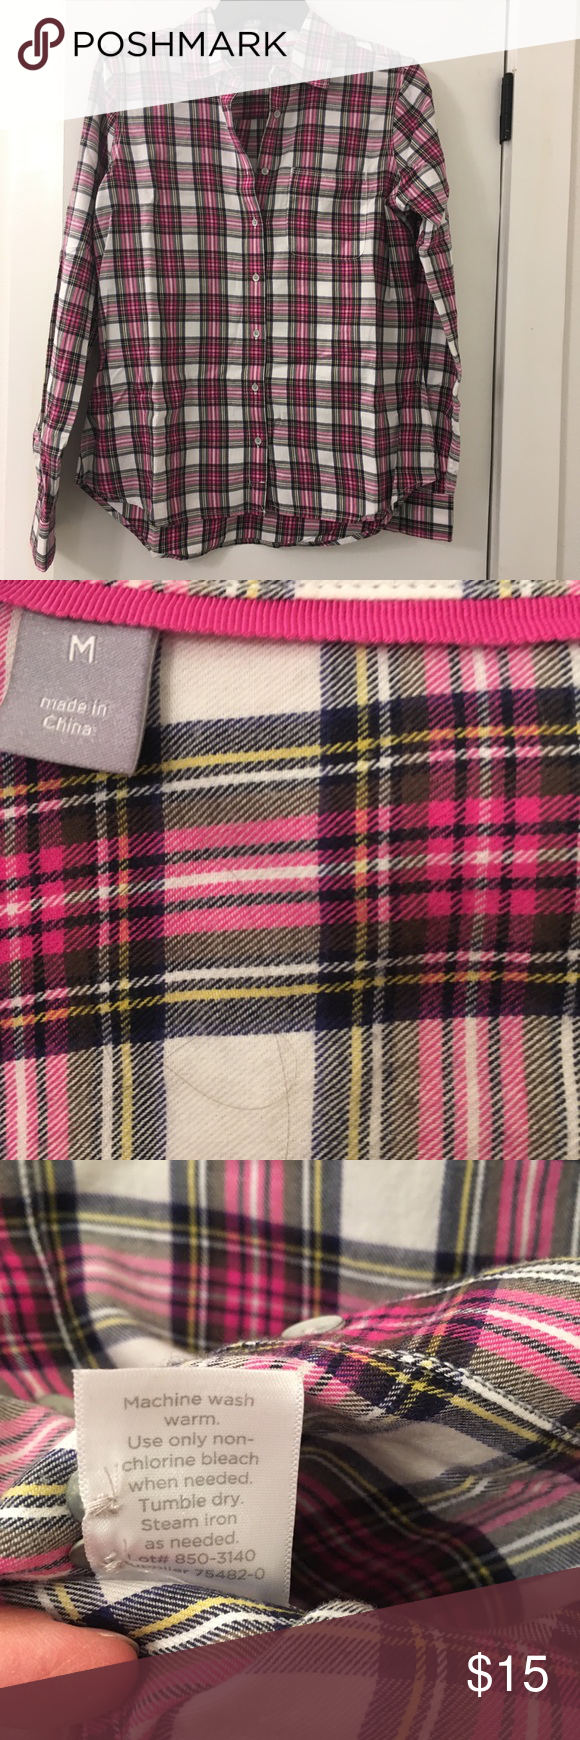 Retro flannel shirts  JCP Pink u Black Plaid Flannel Shirt  My Posh Picks  Pinterest